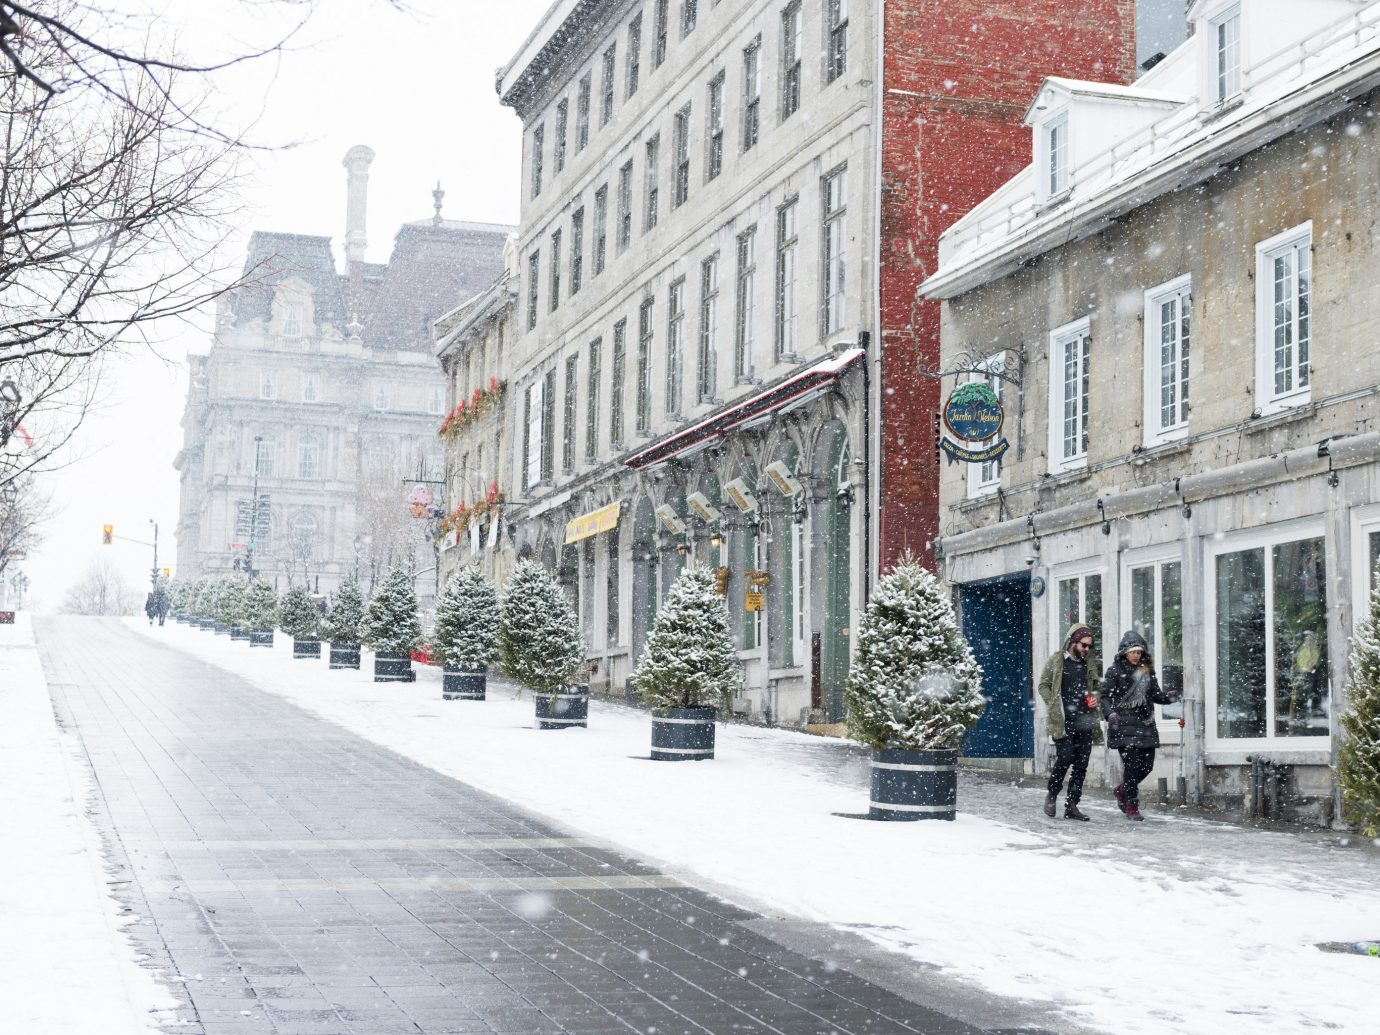 Trip Ideas Weekend Getaways outdoor building way snow Winter scene Town neighbourhood sidewalk street urban area City tree freezing lane road Downtown house facade blizzard tours day